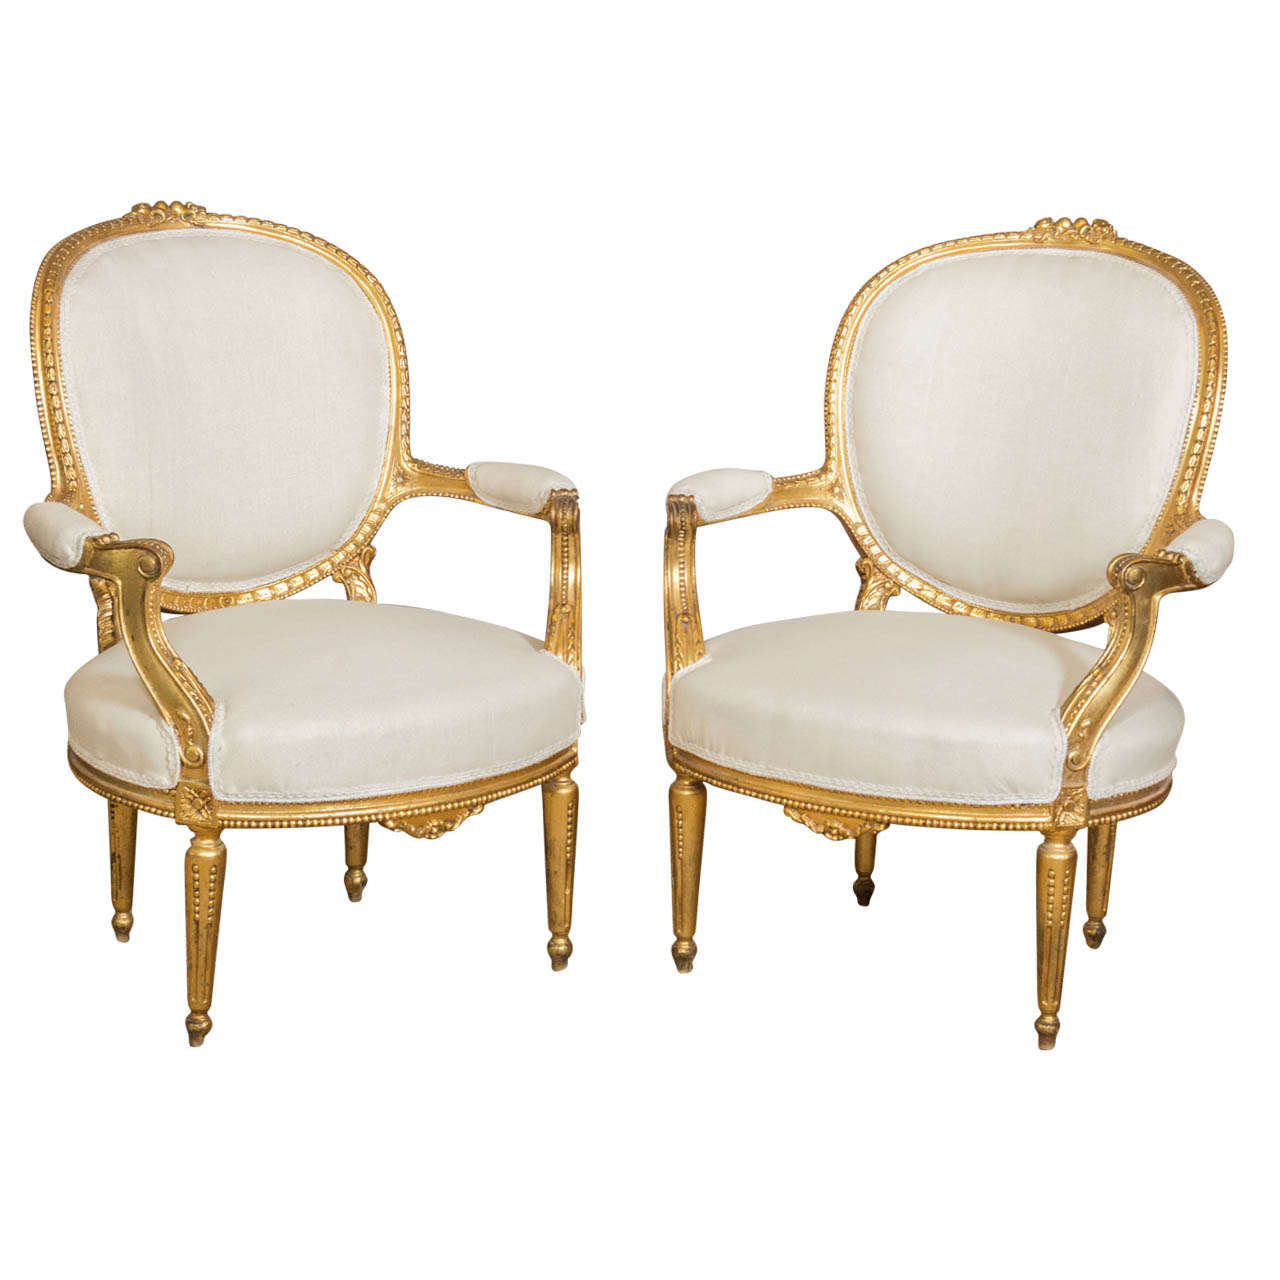 napoleon iii fauteuil chairs at 1stdibs. Black Bedroom Furniture Sets. Home Design Ideas